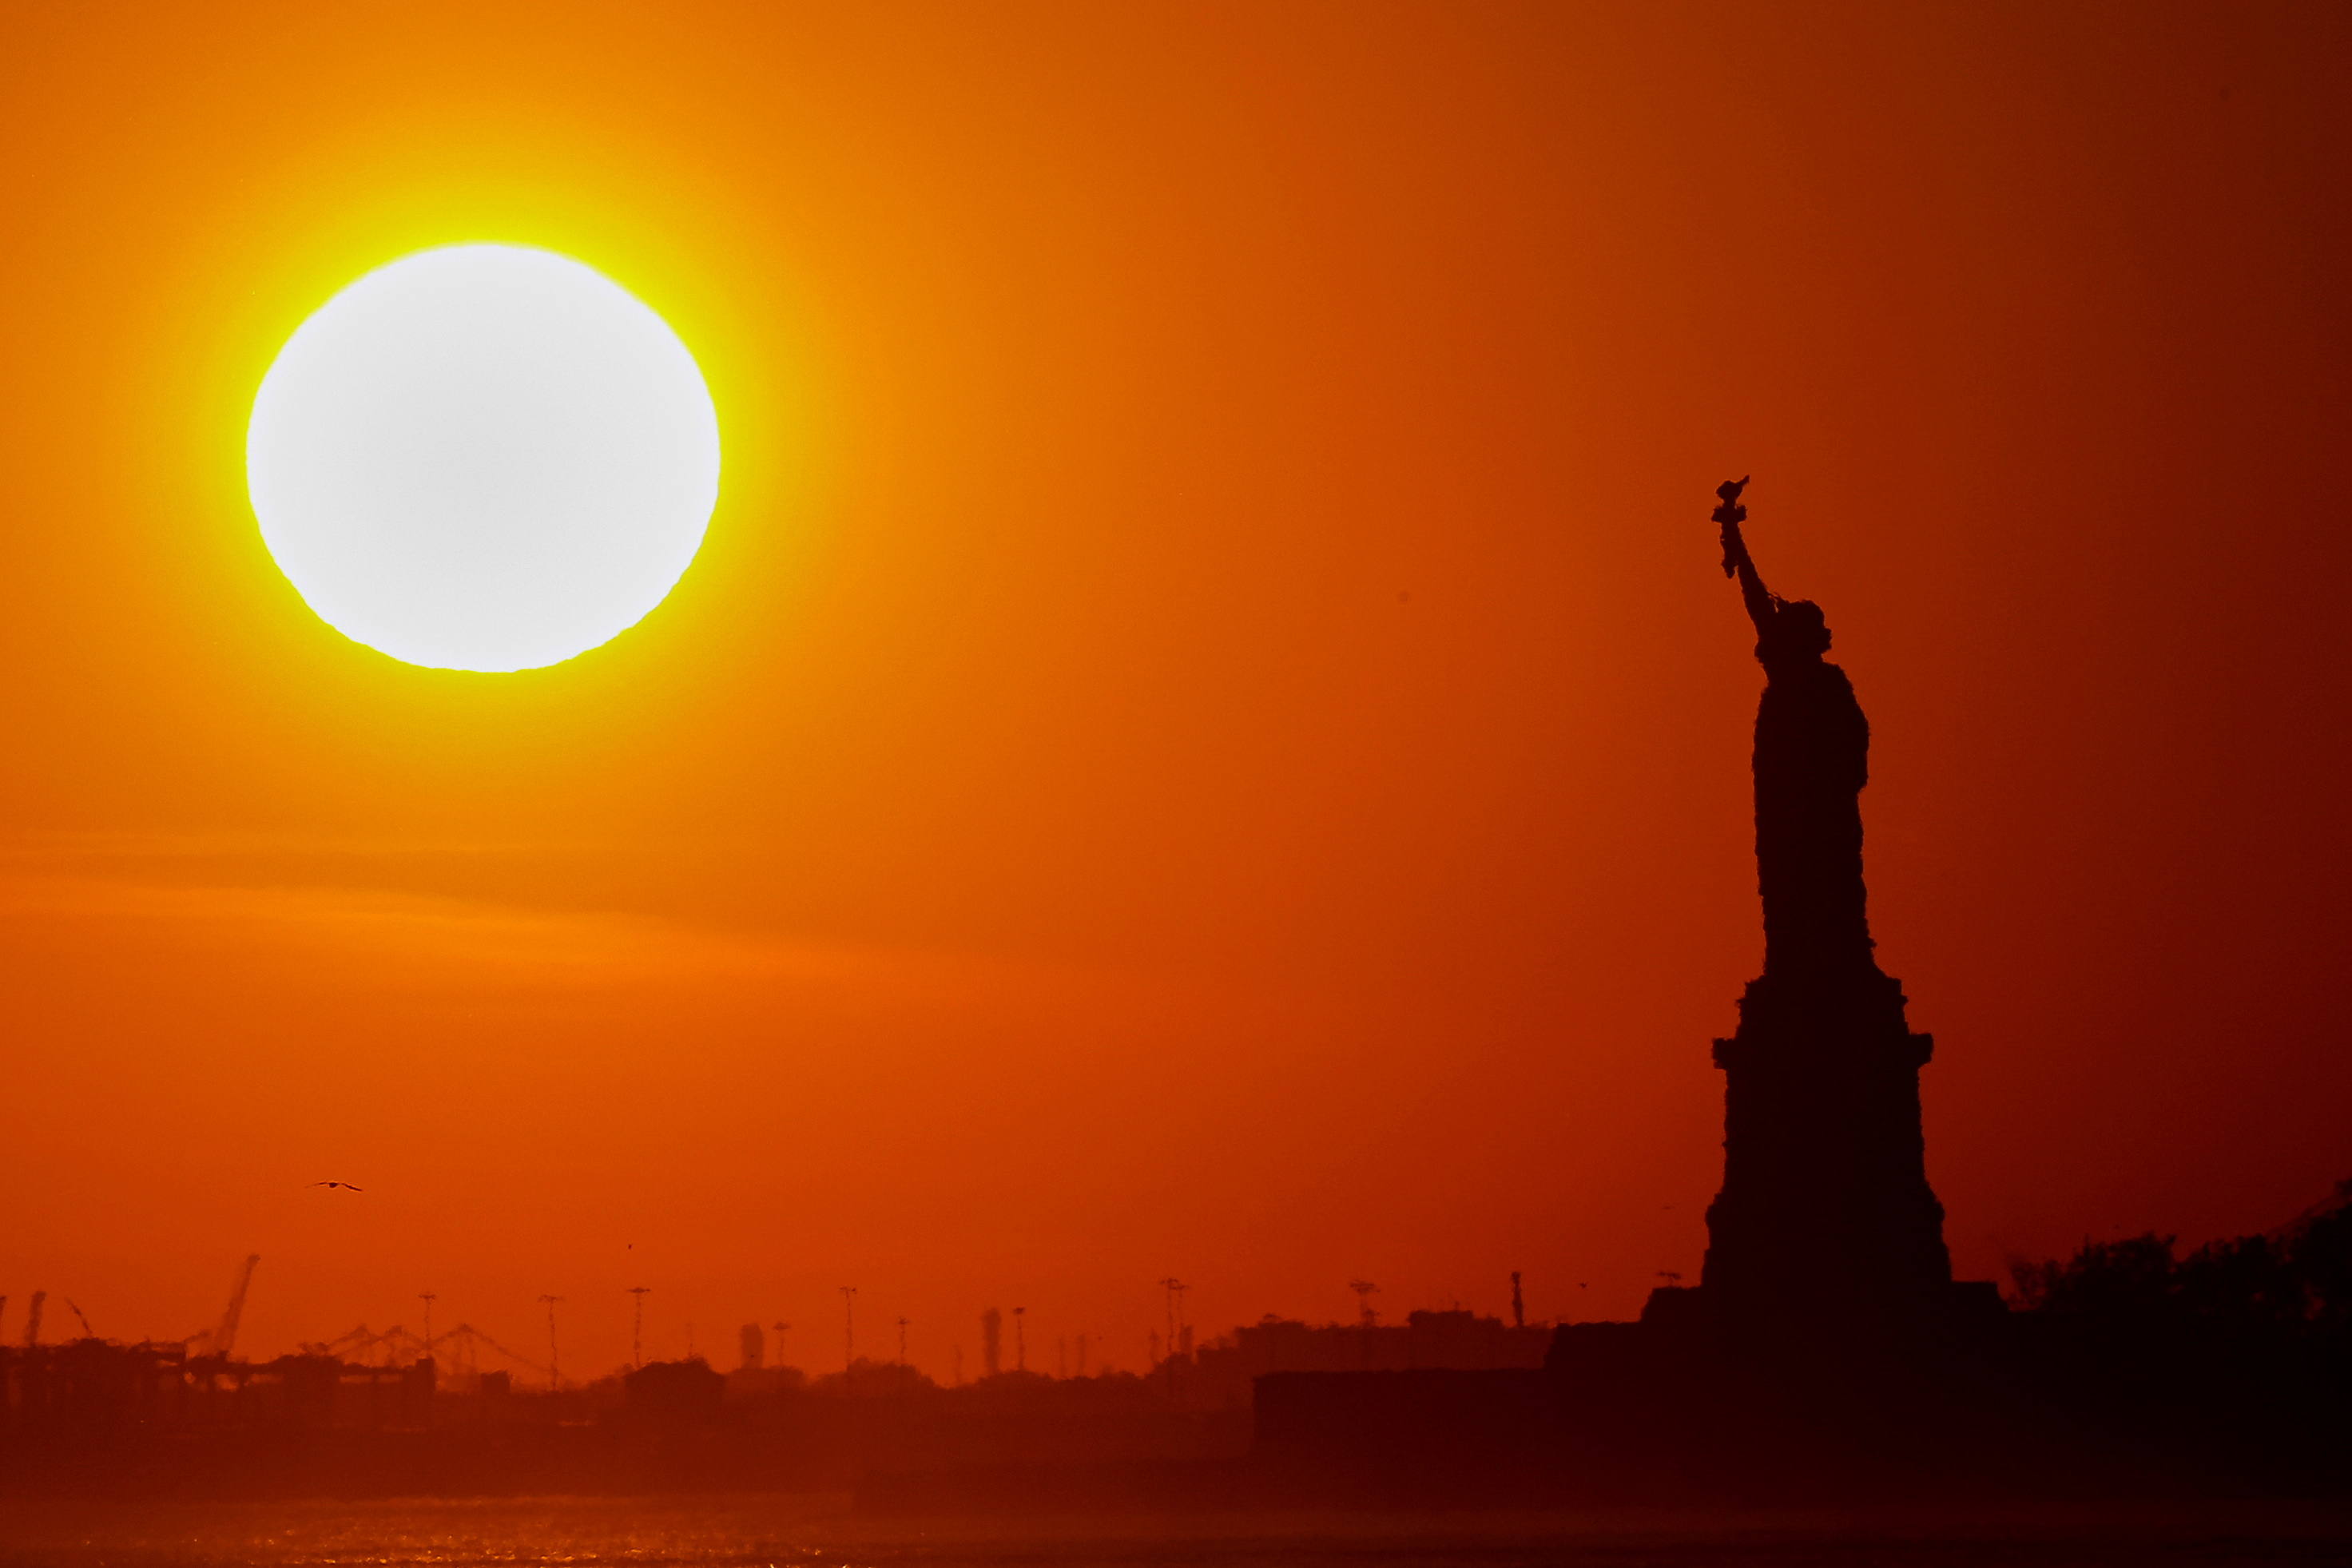 The Statue of Liberty is seen at sunset in New York Harbor